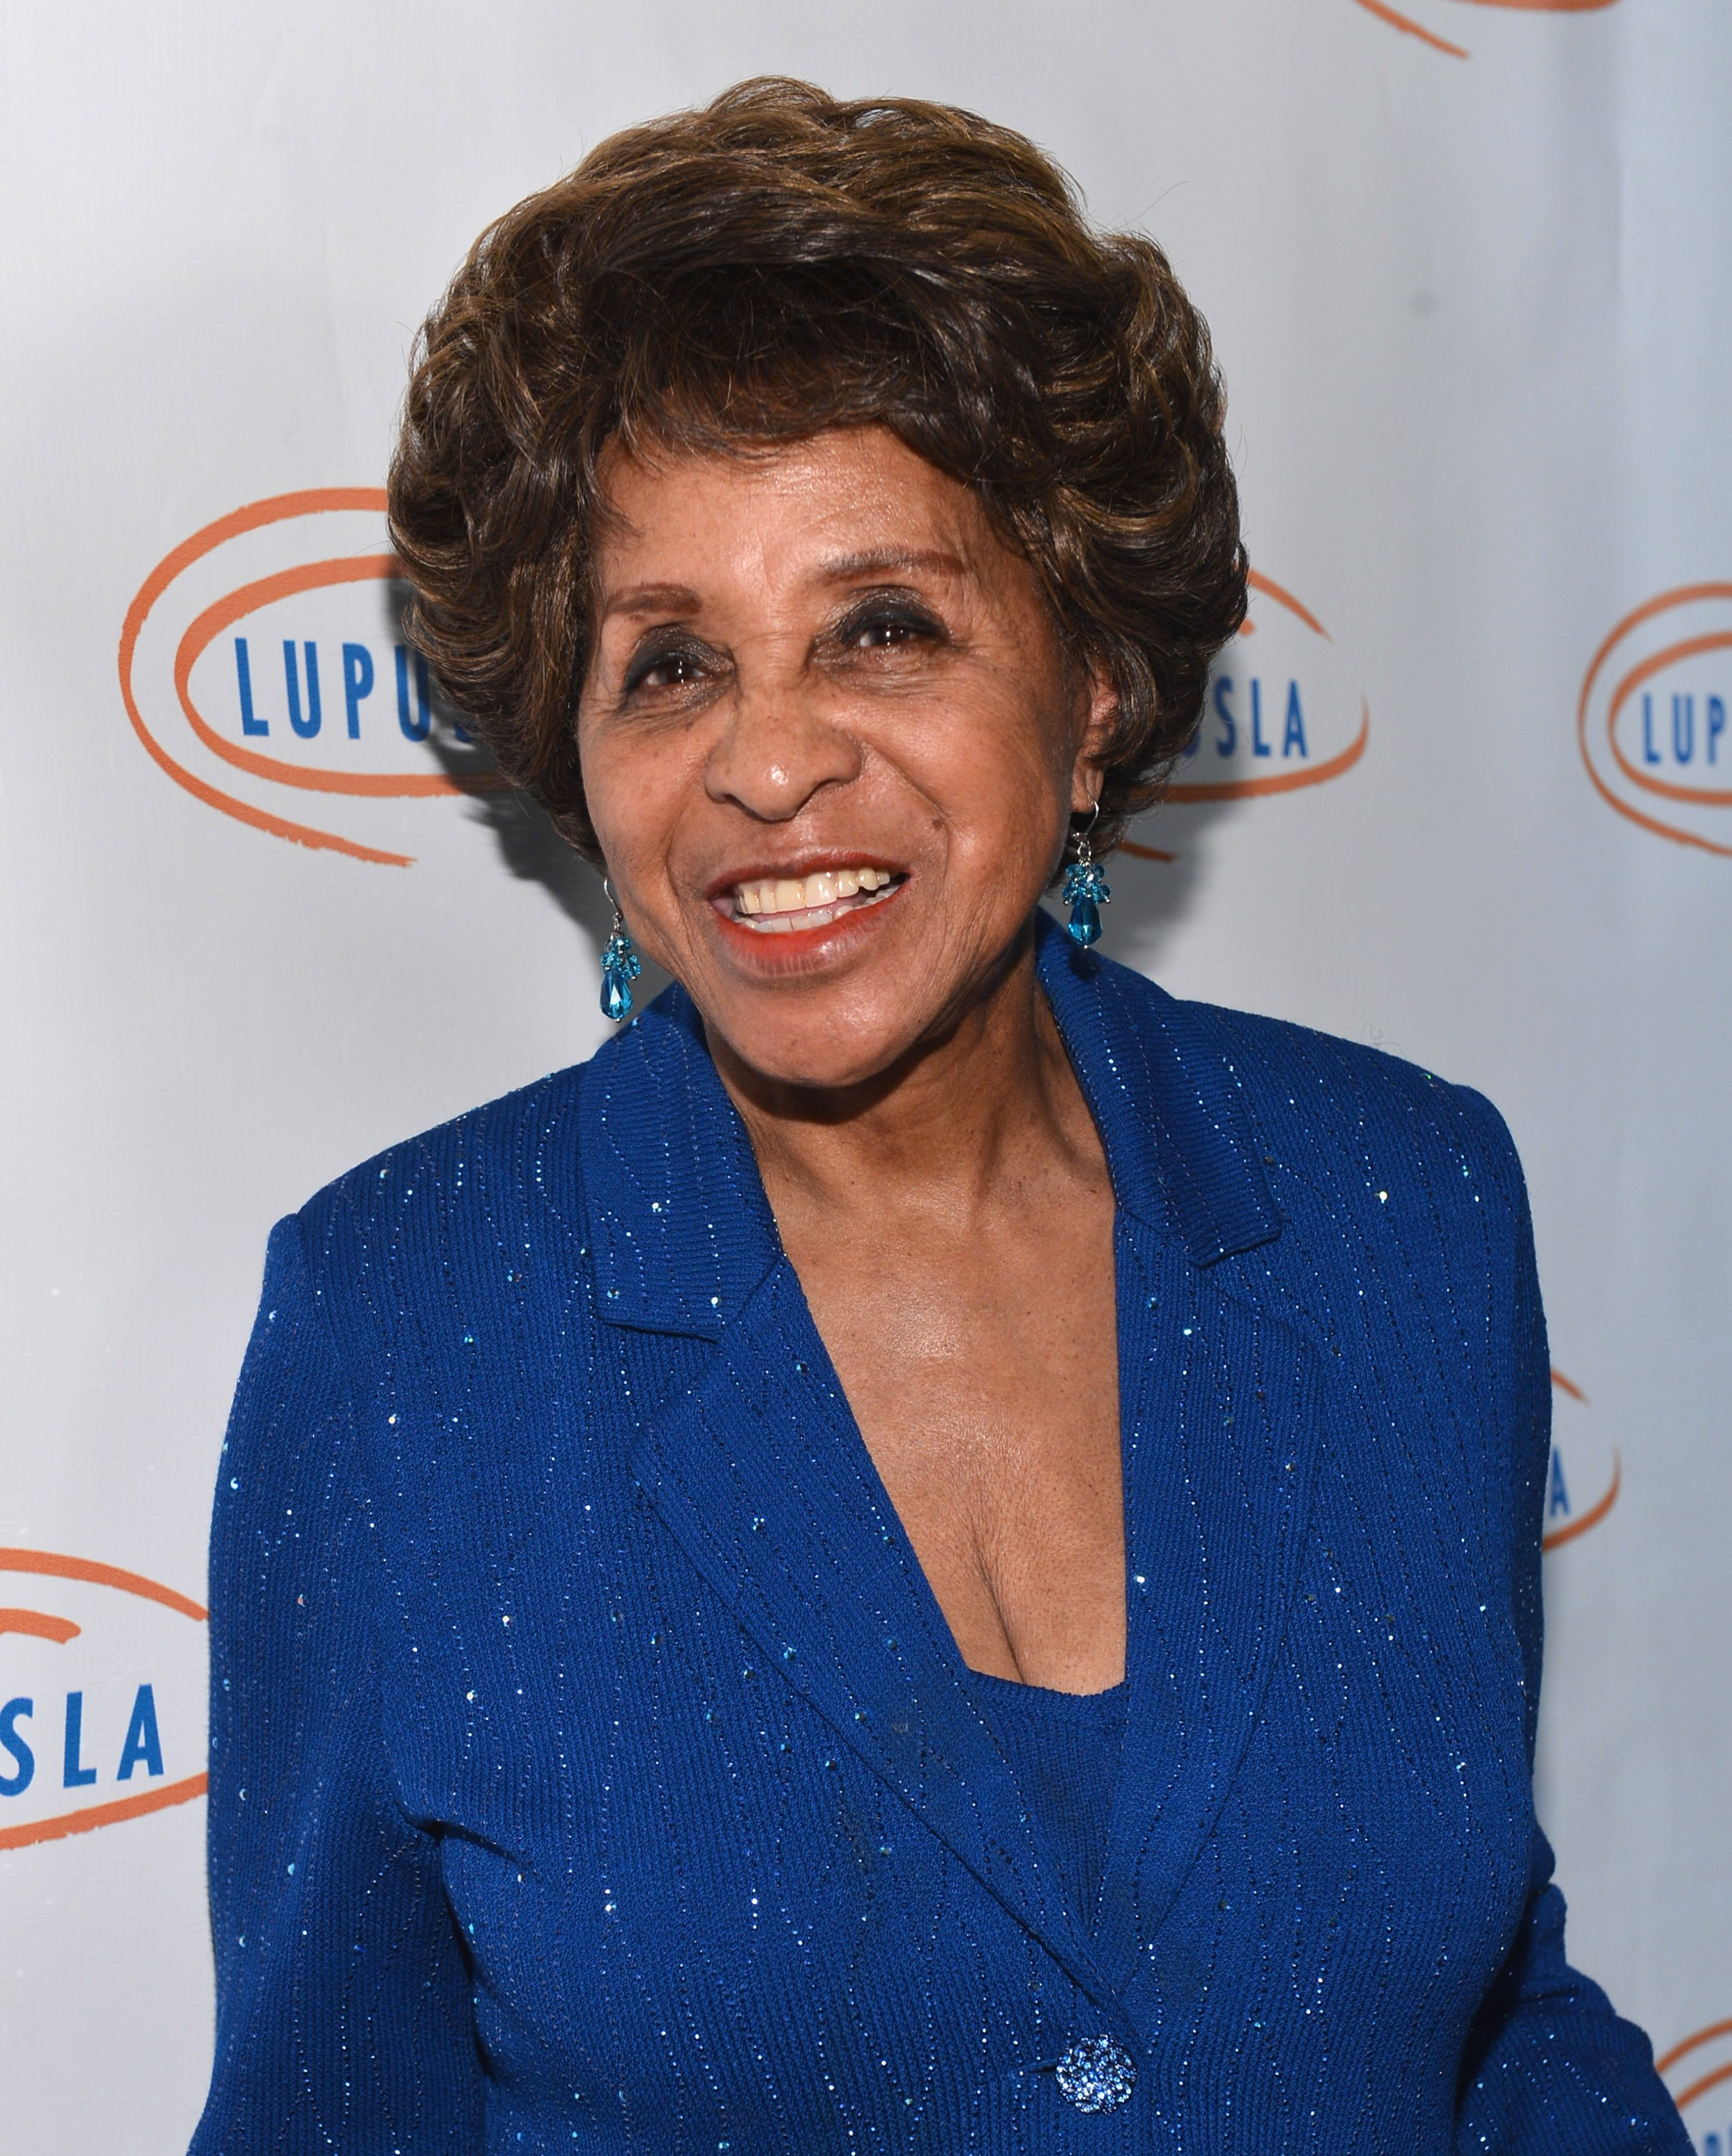 Marla Gibbs at the Lupus LA 10th Anniversary Hollywood Bag Ladies Luncheon on Nov. 1, 2012 in California | Photo: Getty Images